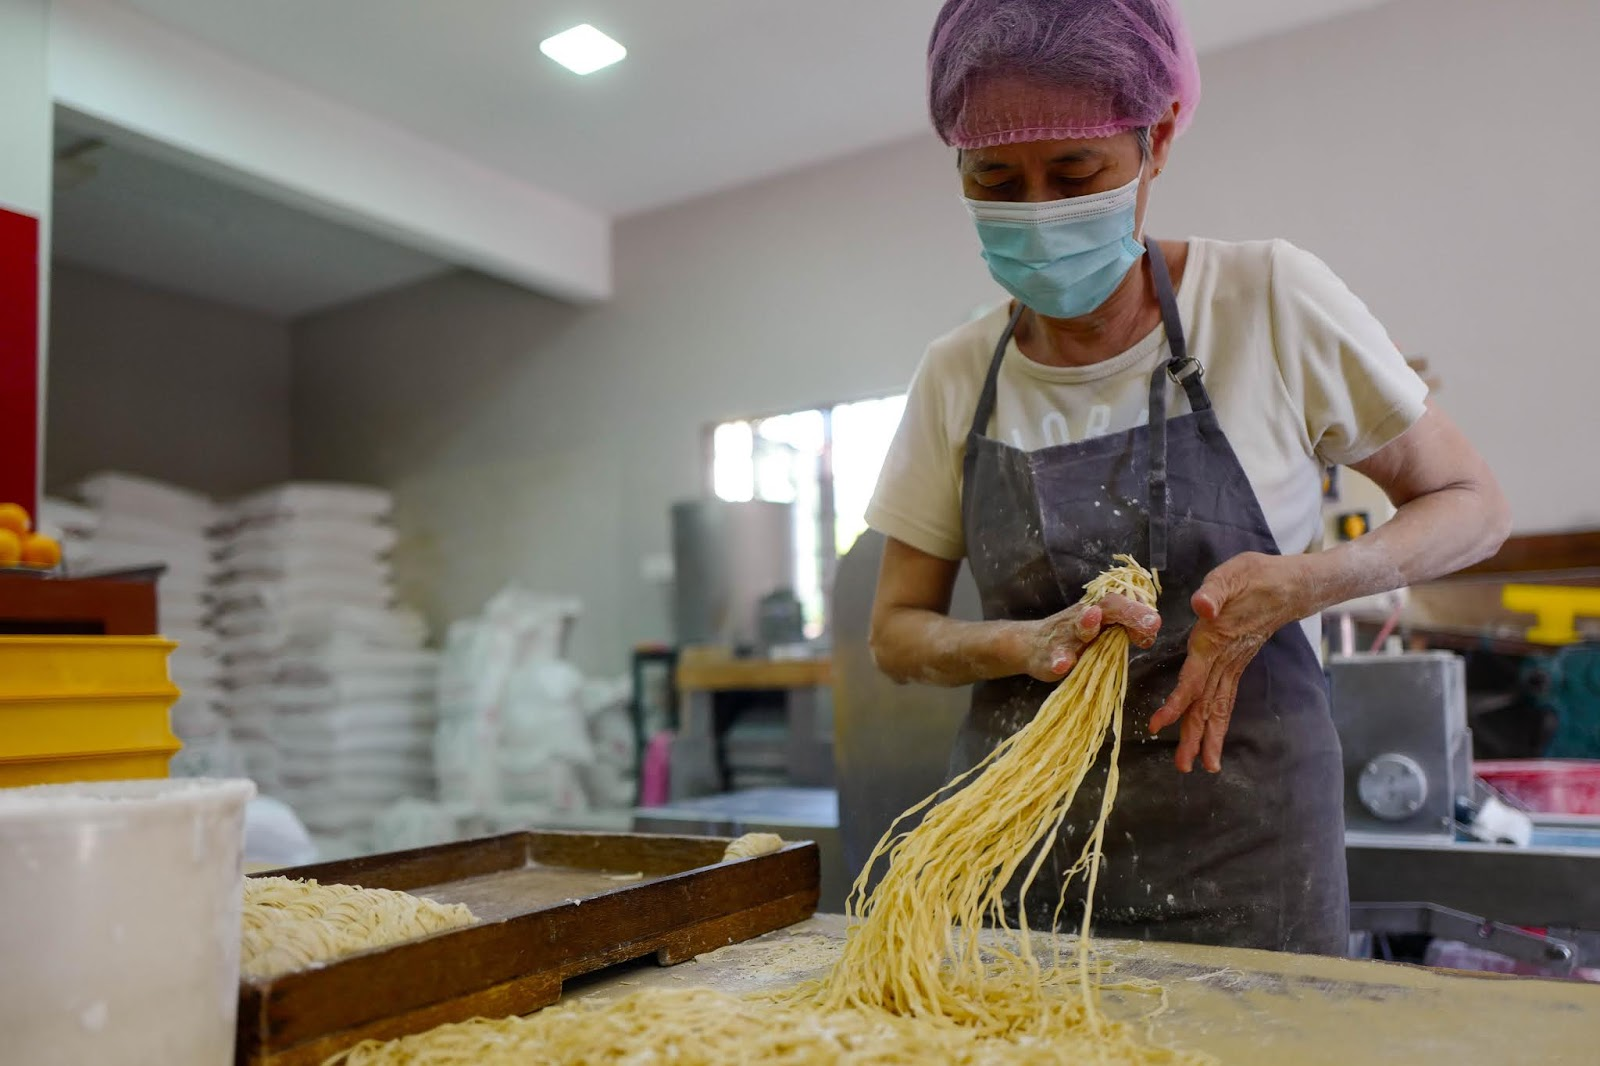 ma noodles 1964: premium duck egg noodles, a malaysian family's three-generations-old heritage